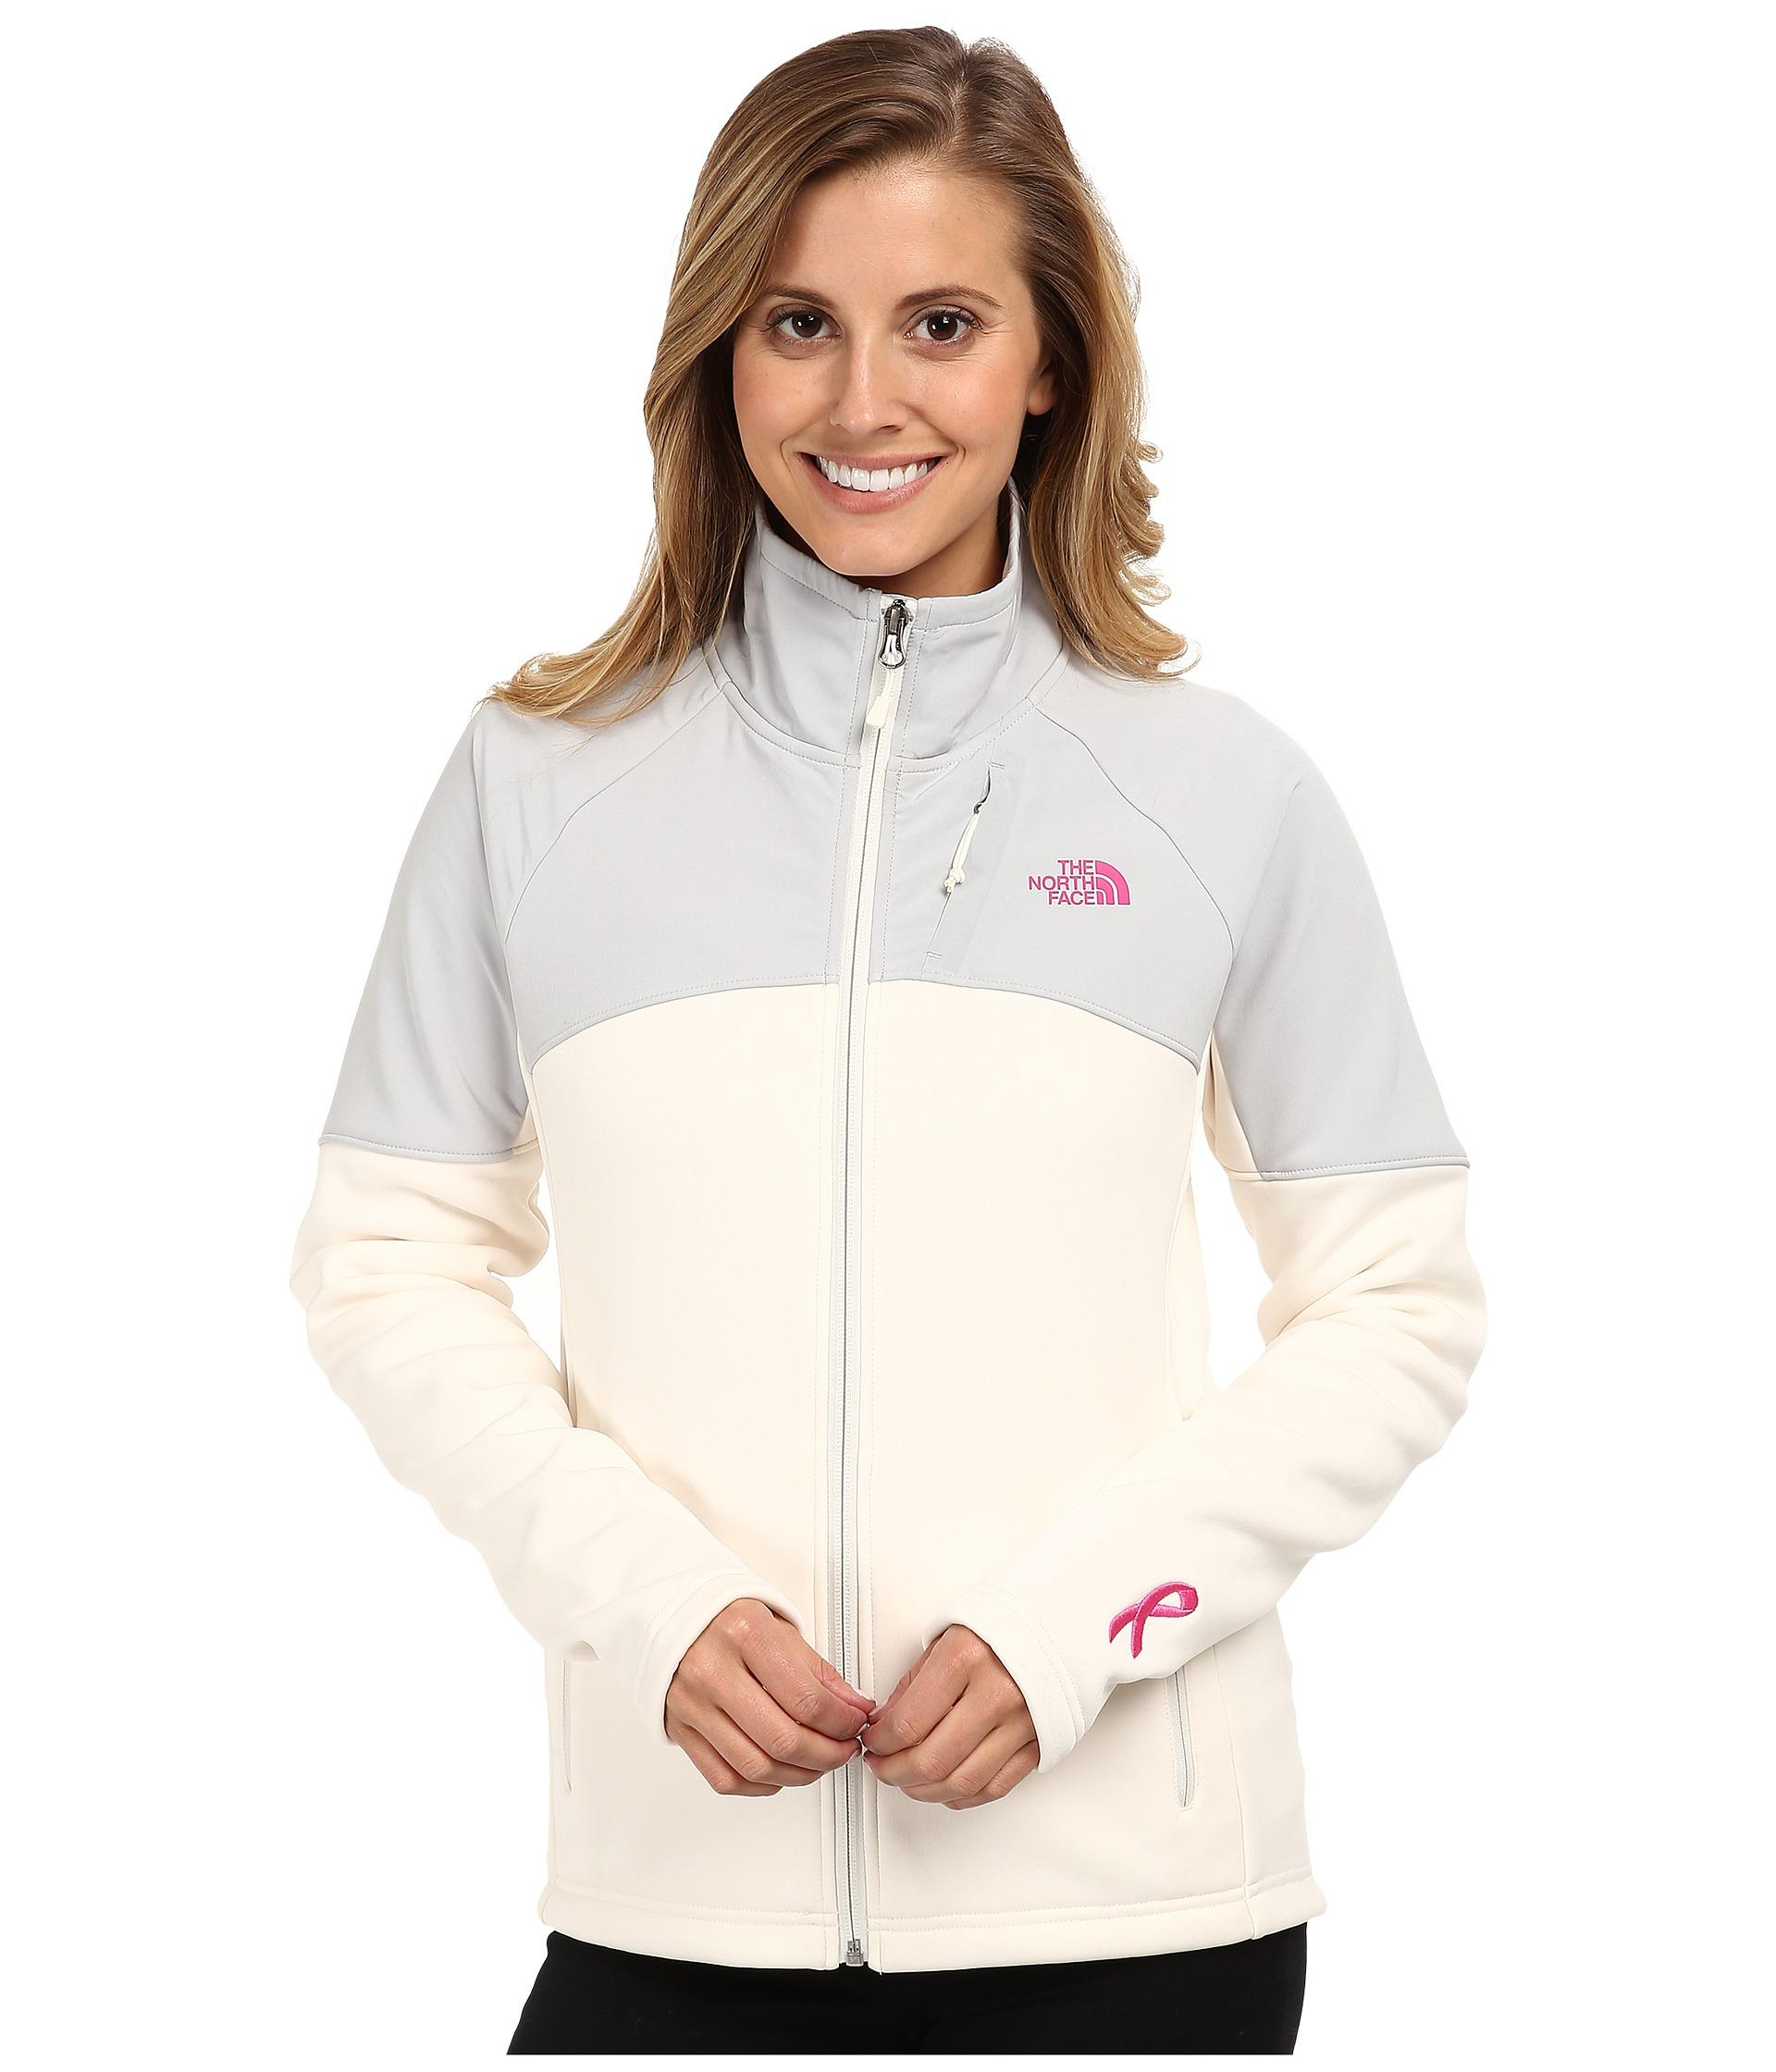 The North Face Pink Ribbon Momentum 300 Jacket